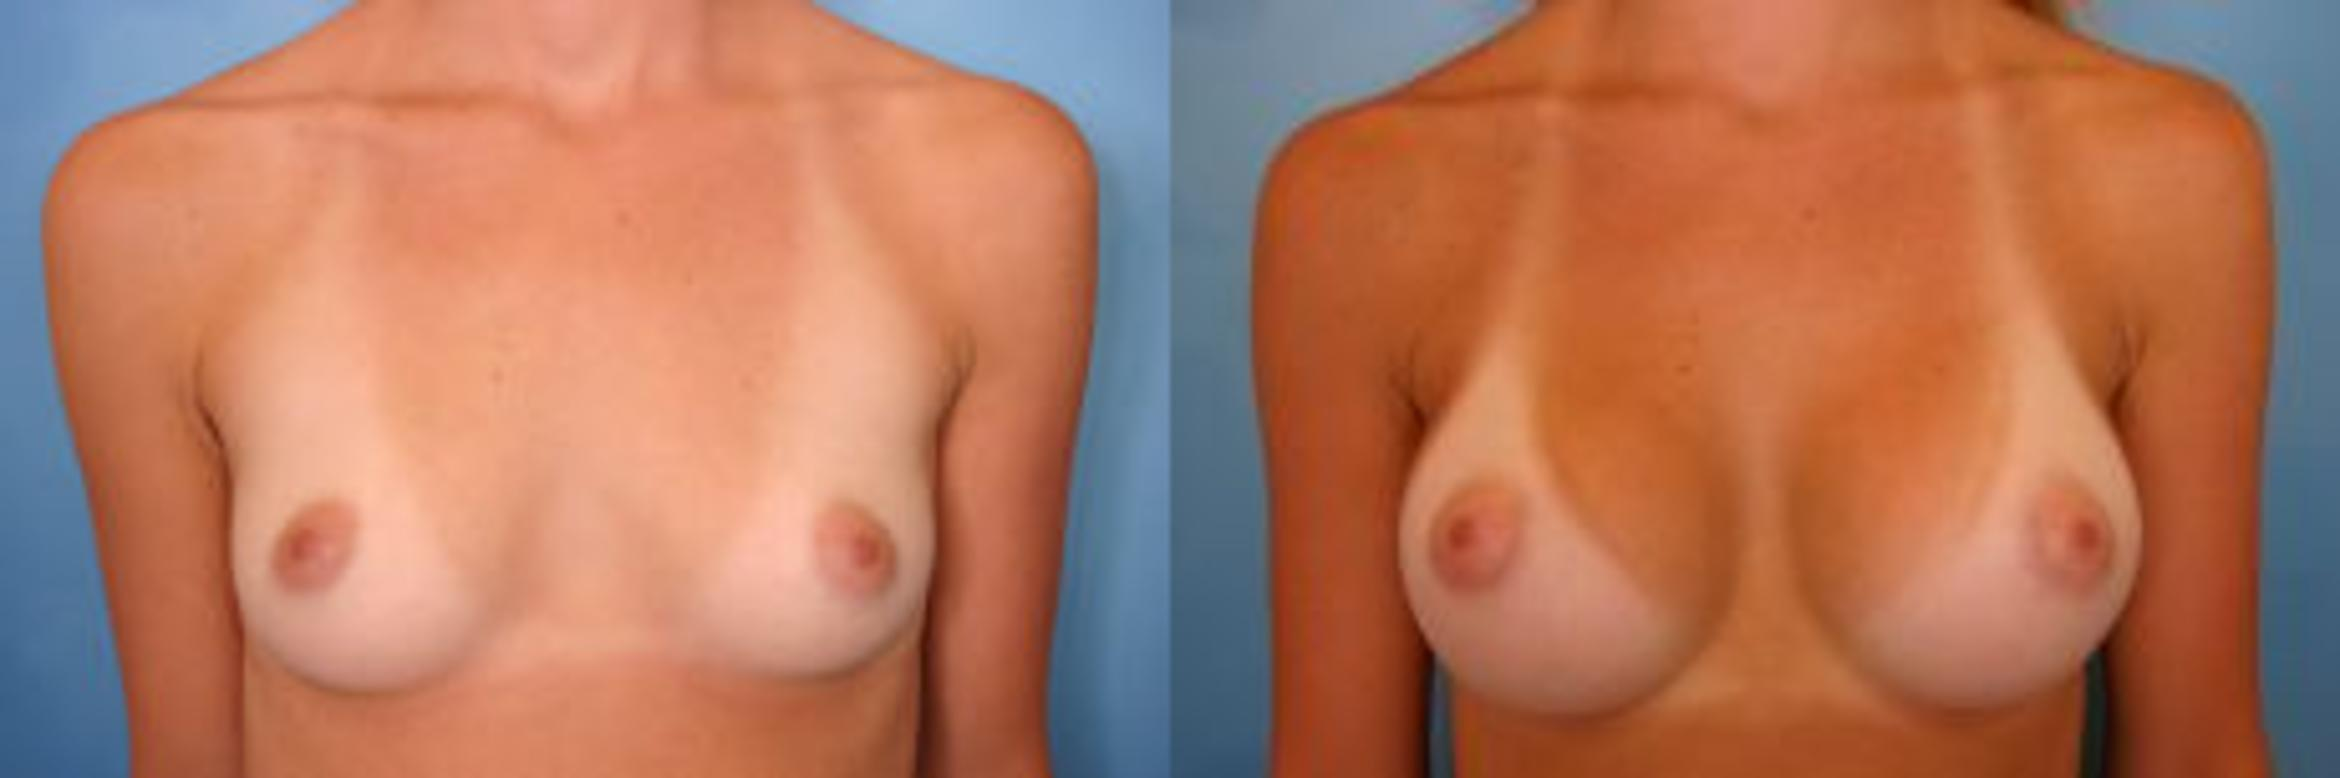 Breast Augmentation Case 1 Before & After View #1 | Naples, FL | Kent V. Hasen, M.D.